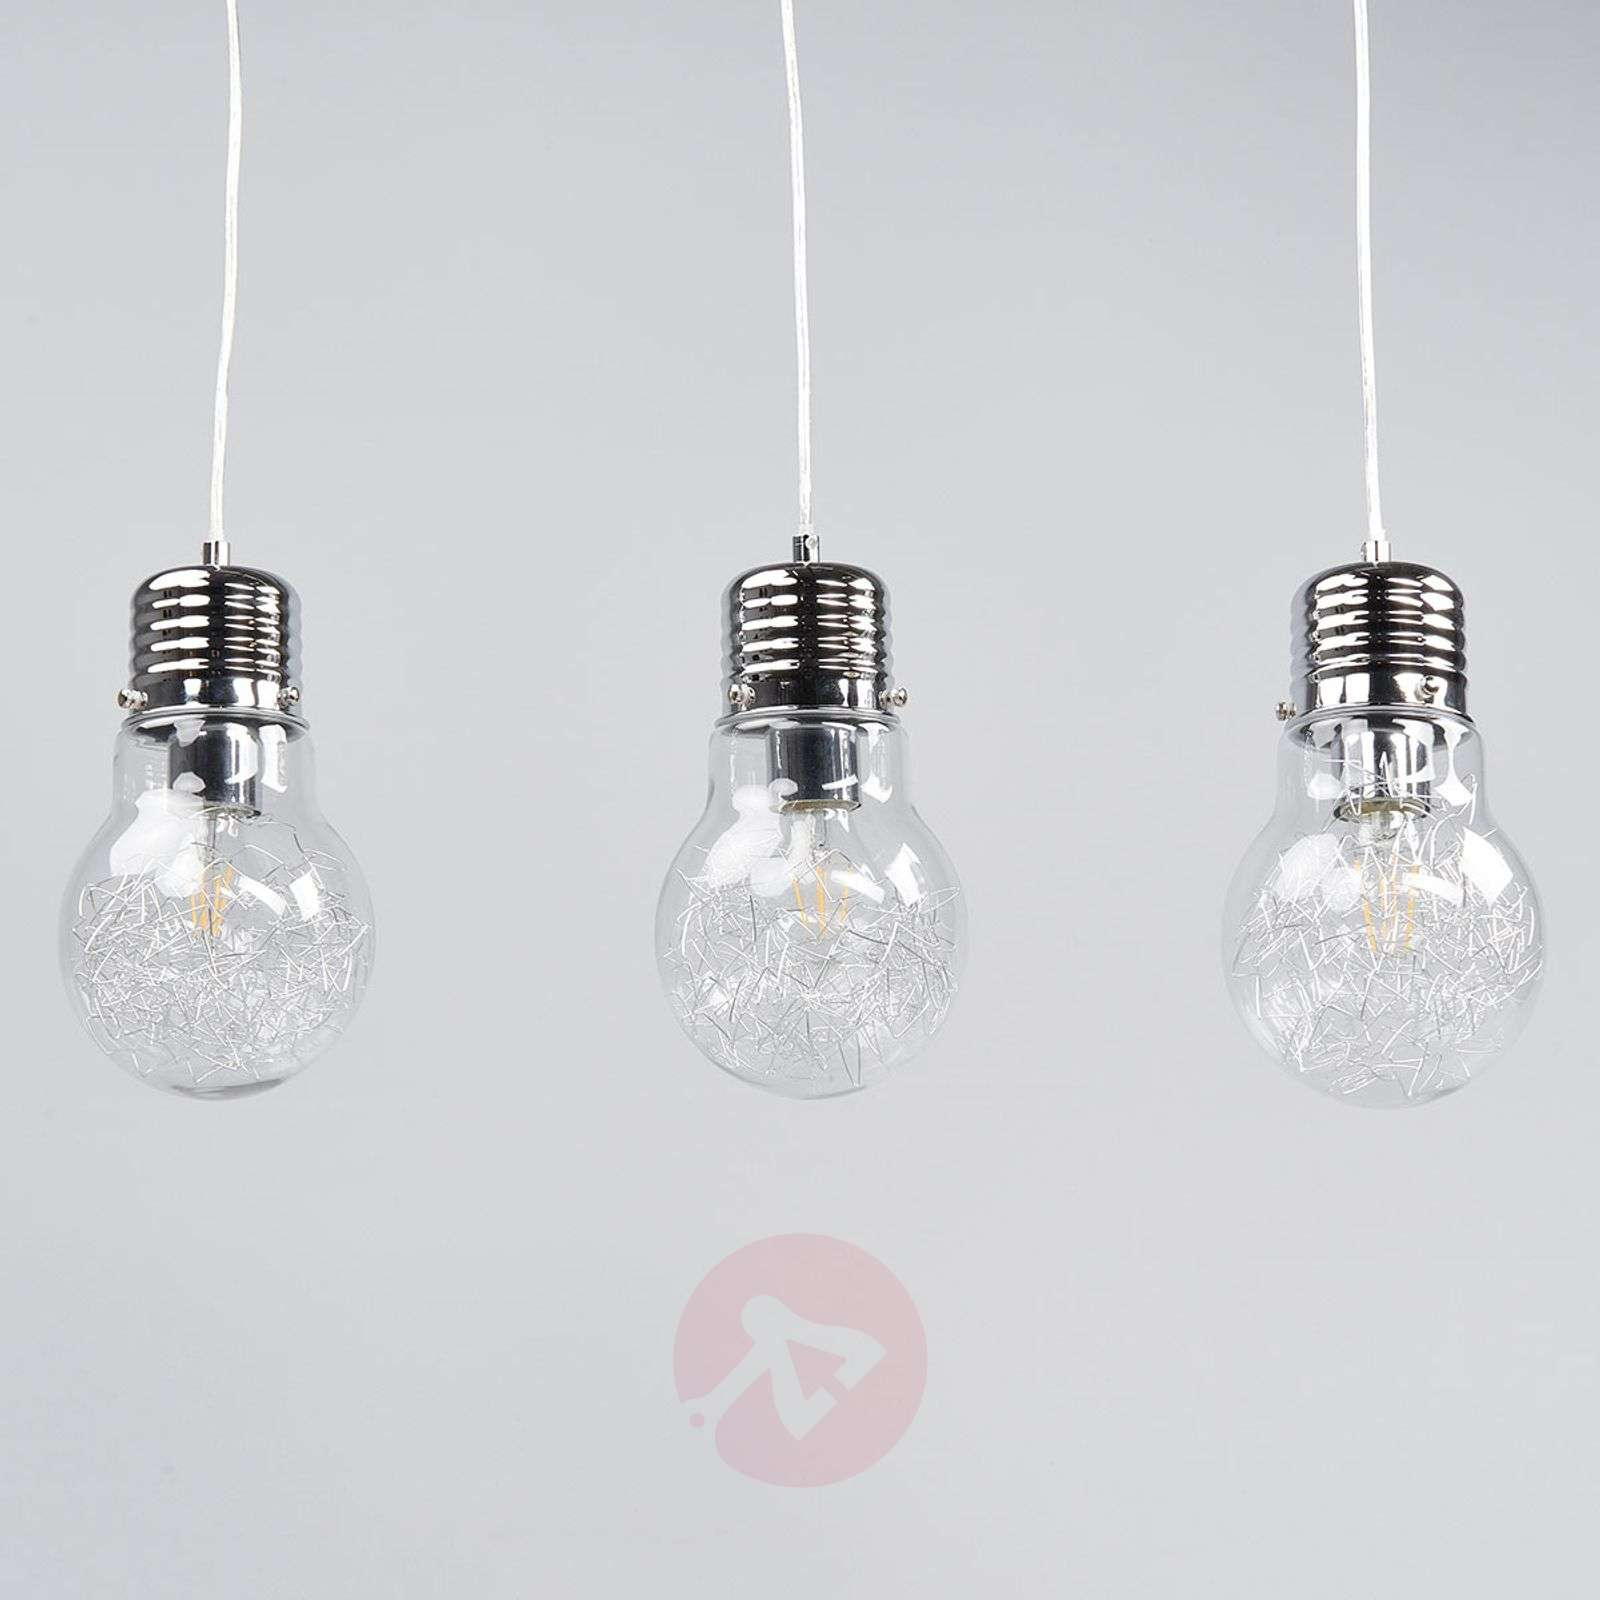 pendant l ca filecentennial bulb pixball light livermore com in